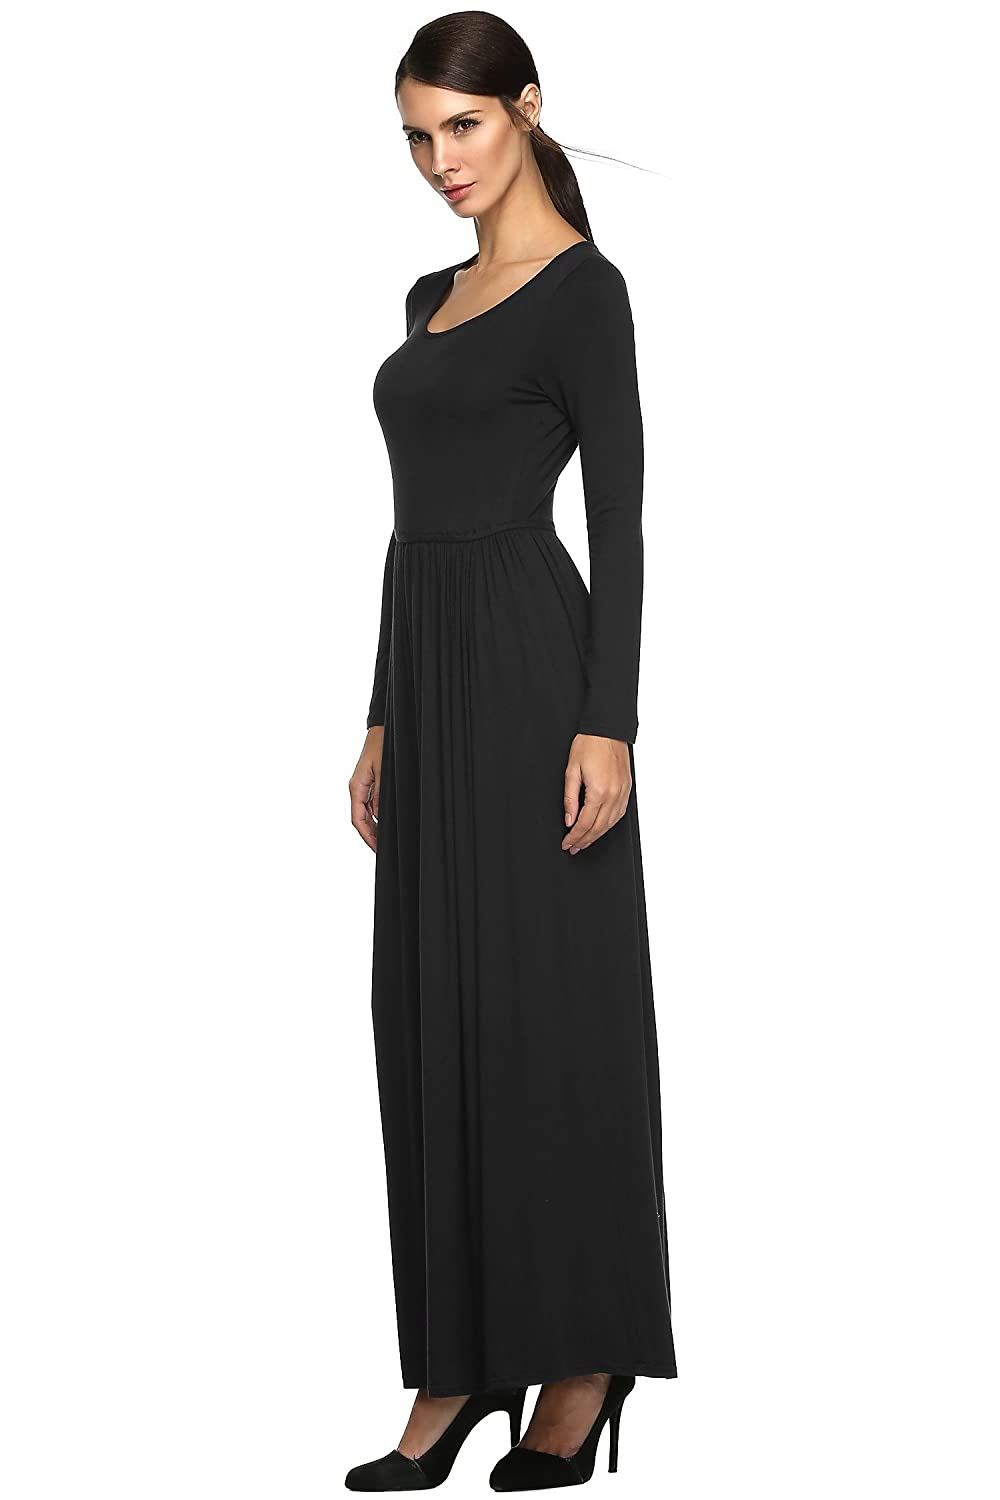 Womens Long Sleeve Dress Waist Pleated Party Causual Fashional Figure Flattering Maxi Dress (XXL, Black): Amazon.co.uk: Clothing